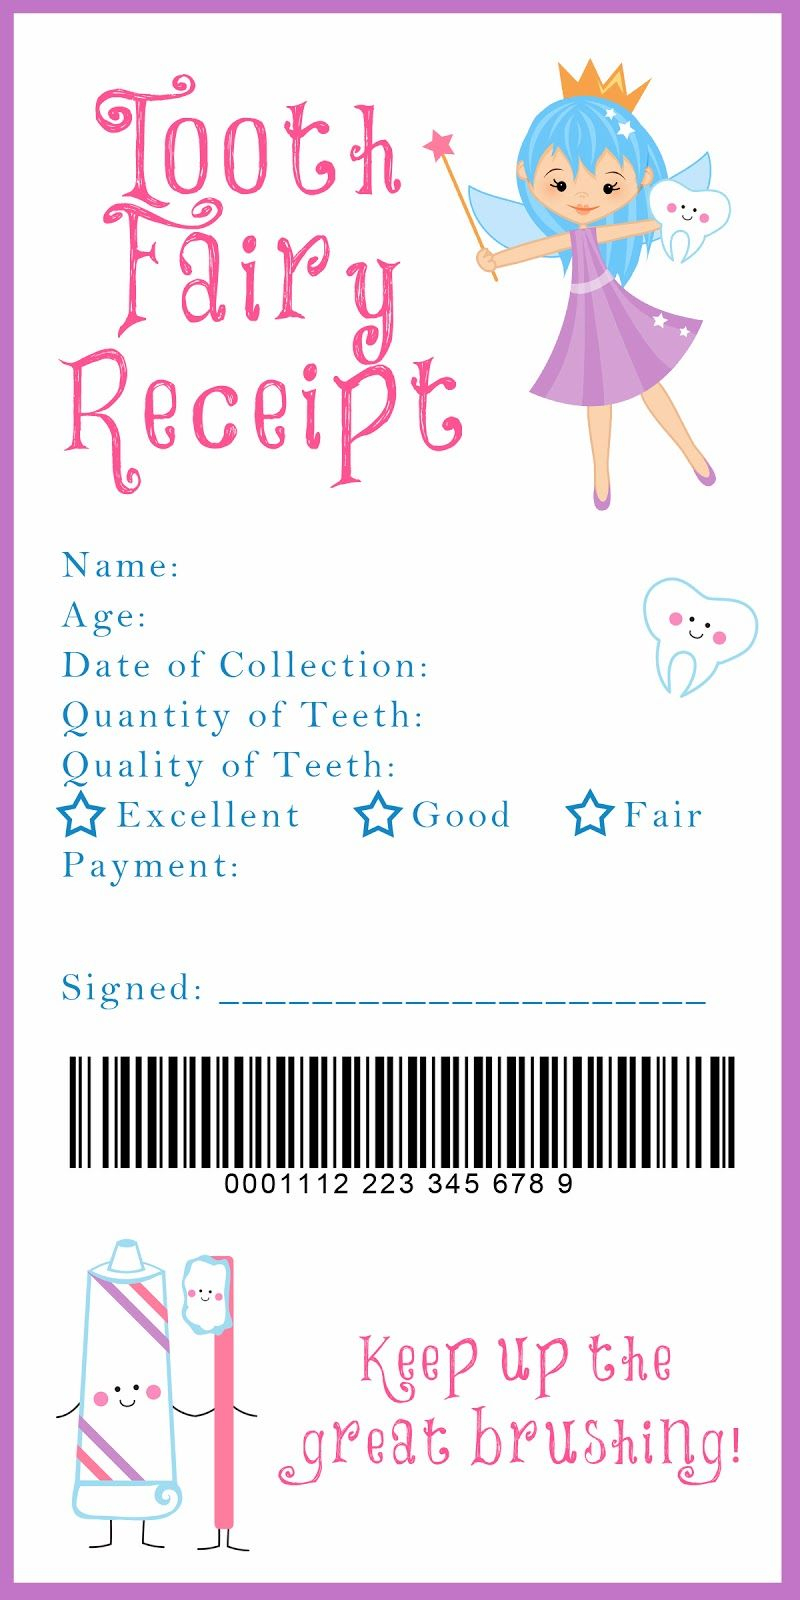 Tooth Fairy Receipt And Many Other Awesome Printables | Kids - Tooth Fairy Stationery Free Printable